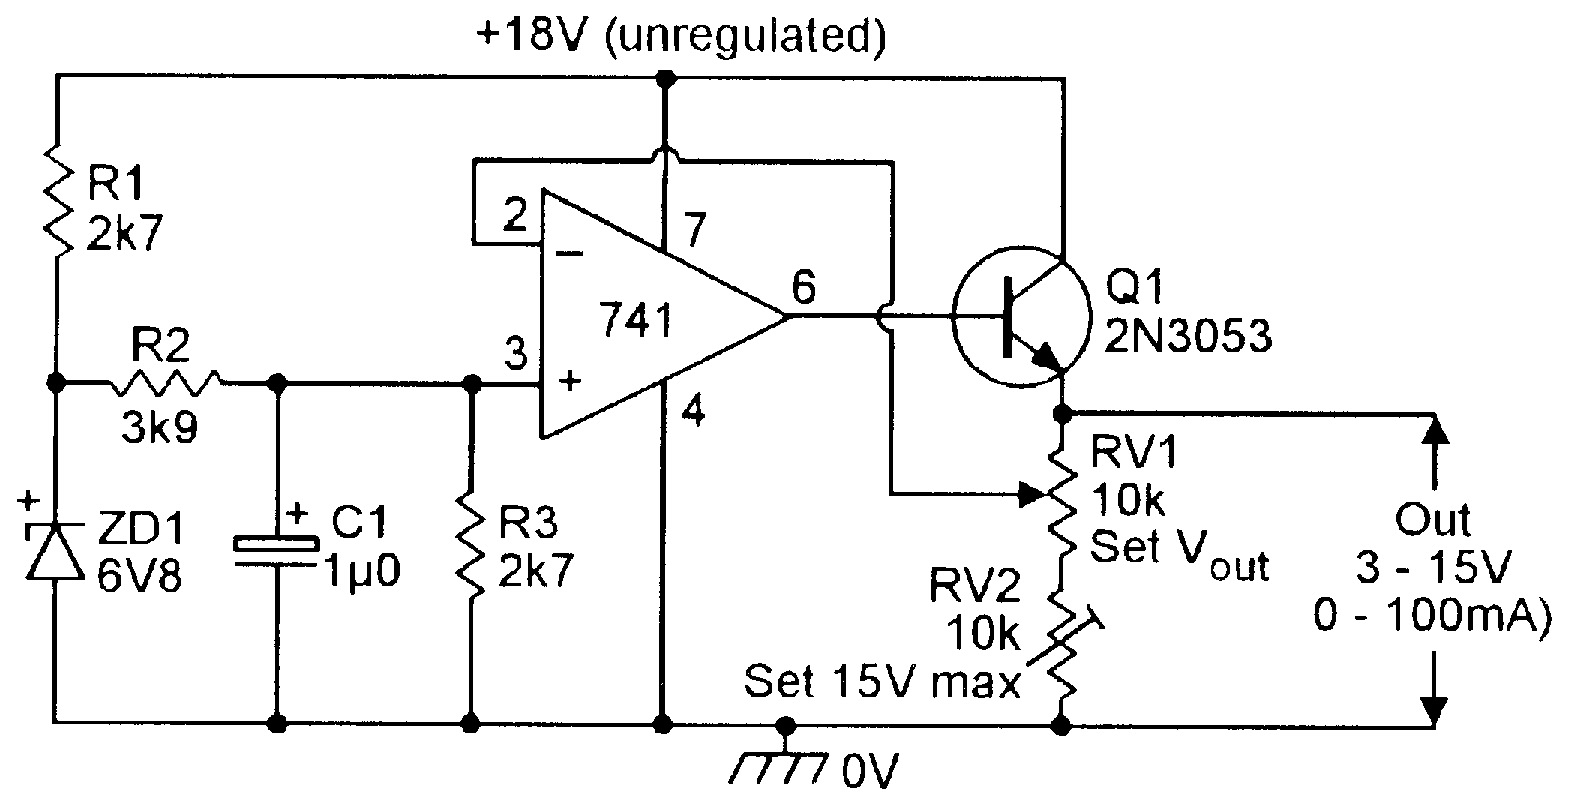 Op Amp Cookbook Part 4 Nuts Volts Magazine Ac Led Circuit Diagram In Addition 12 Volt Voltage Regulator Figure 20 3v To 15v 0 100 Ma Stabilized Psu